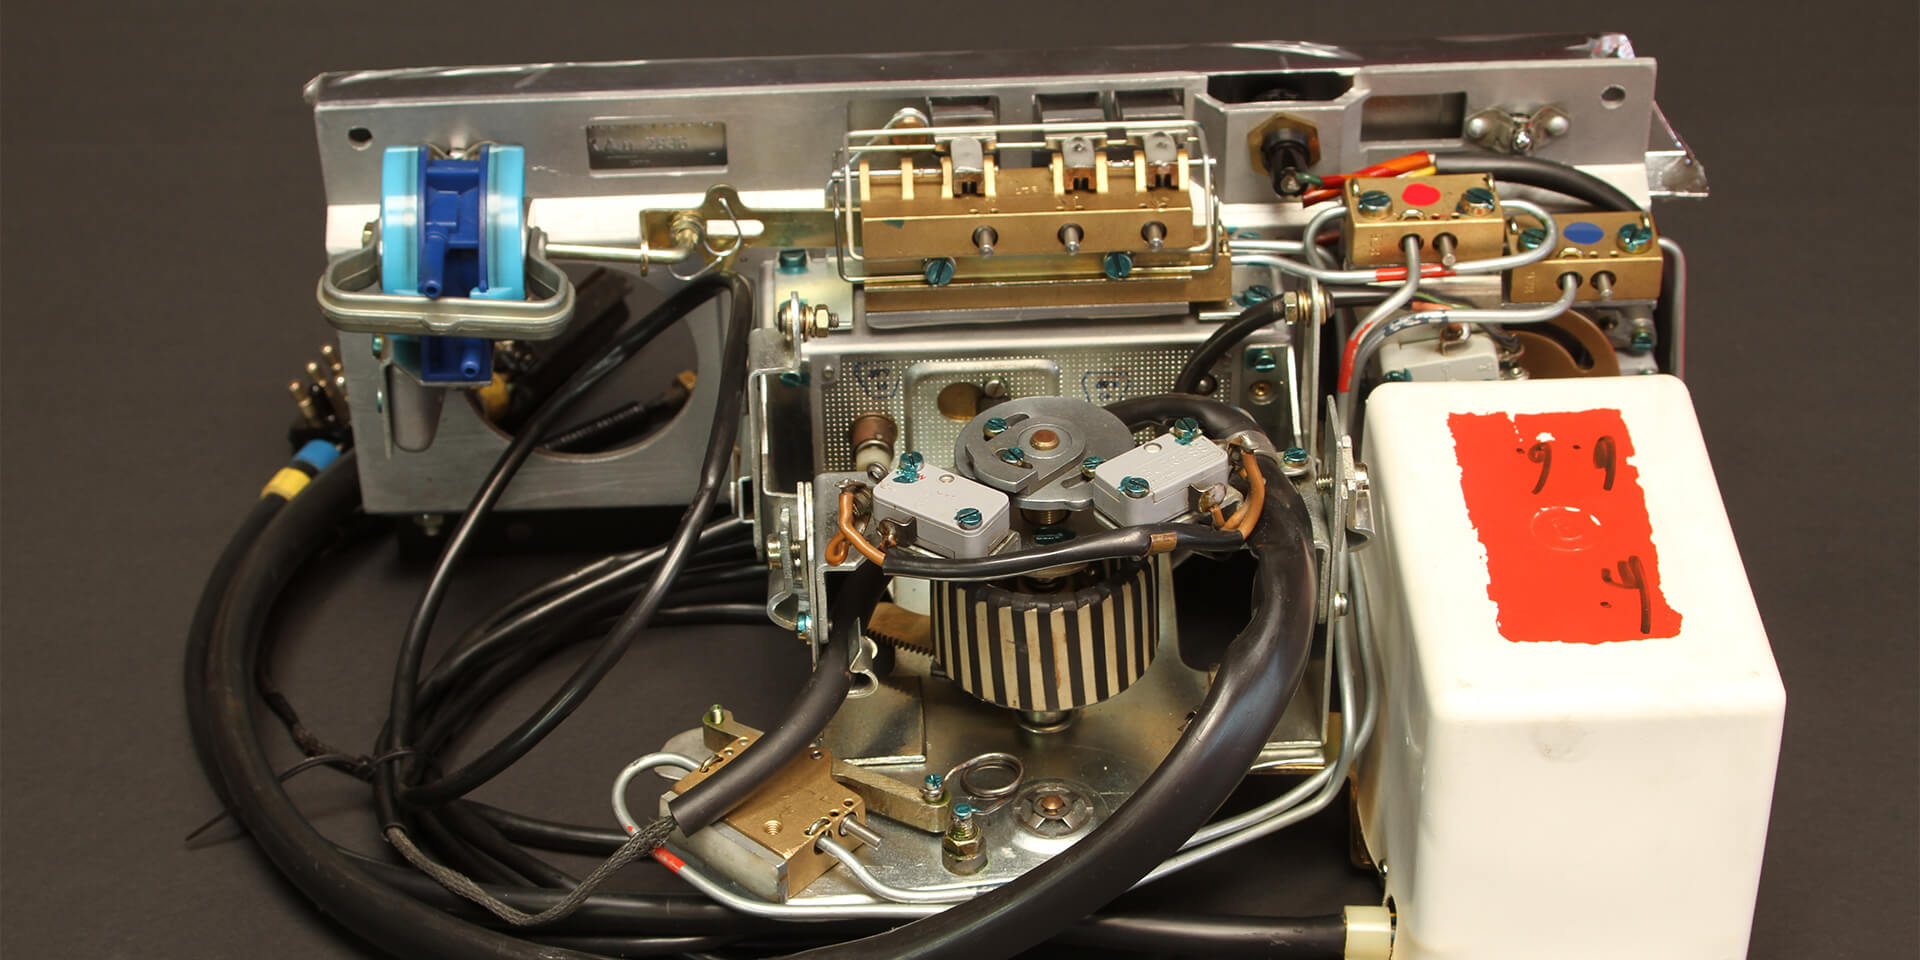 Tool manufacture for vintage Mercedes cars